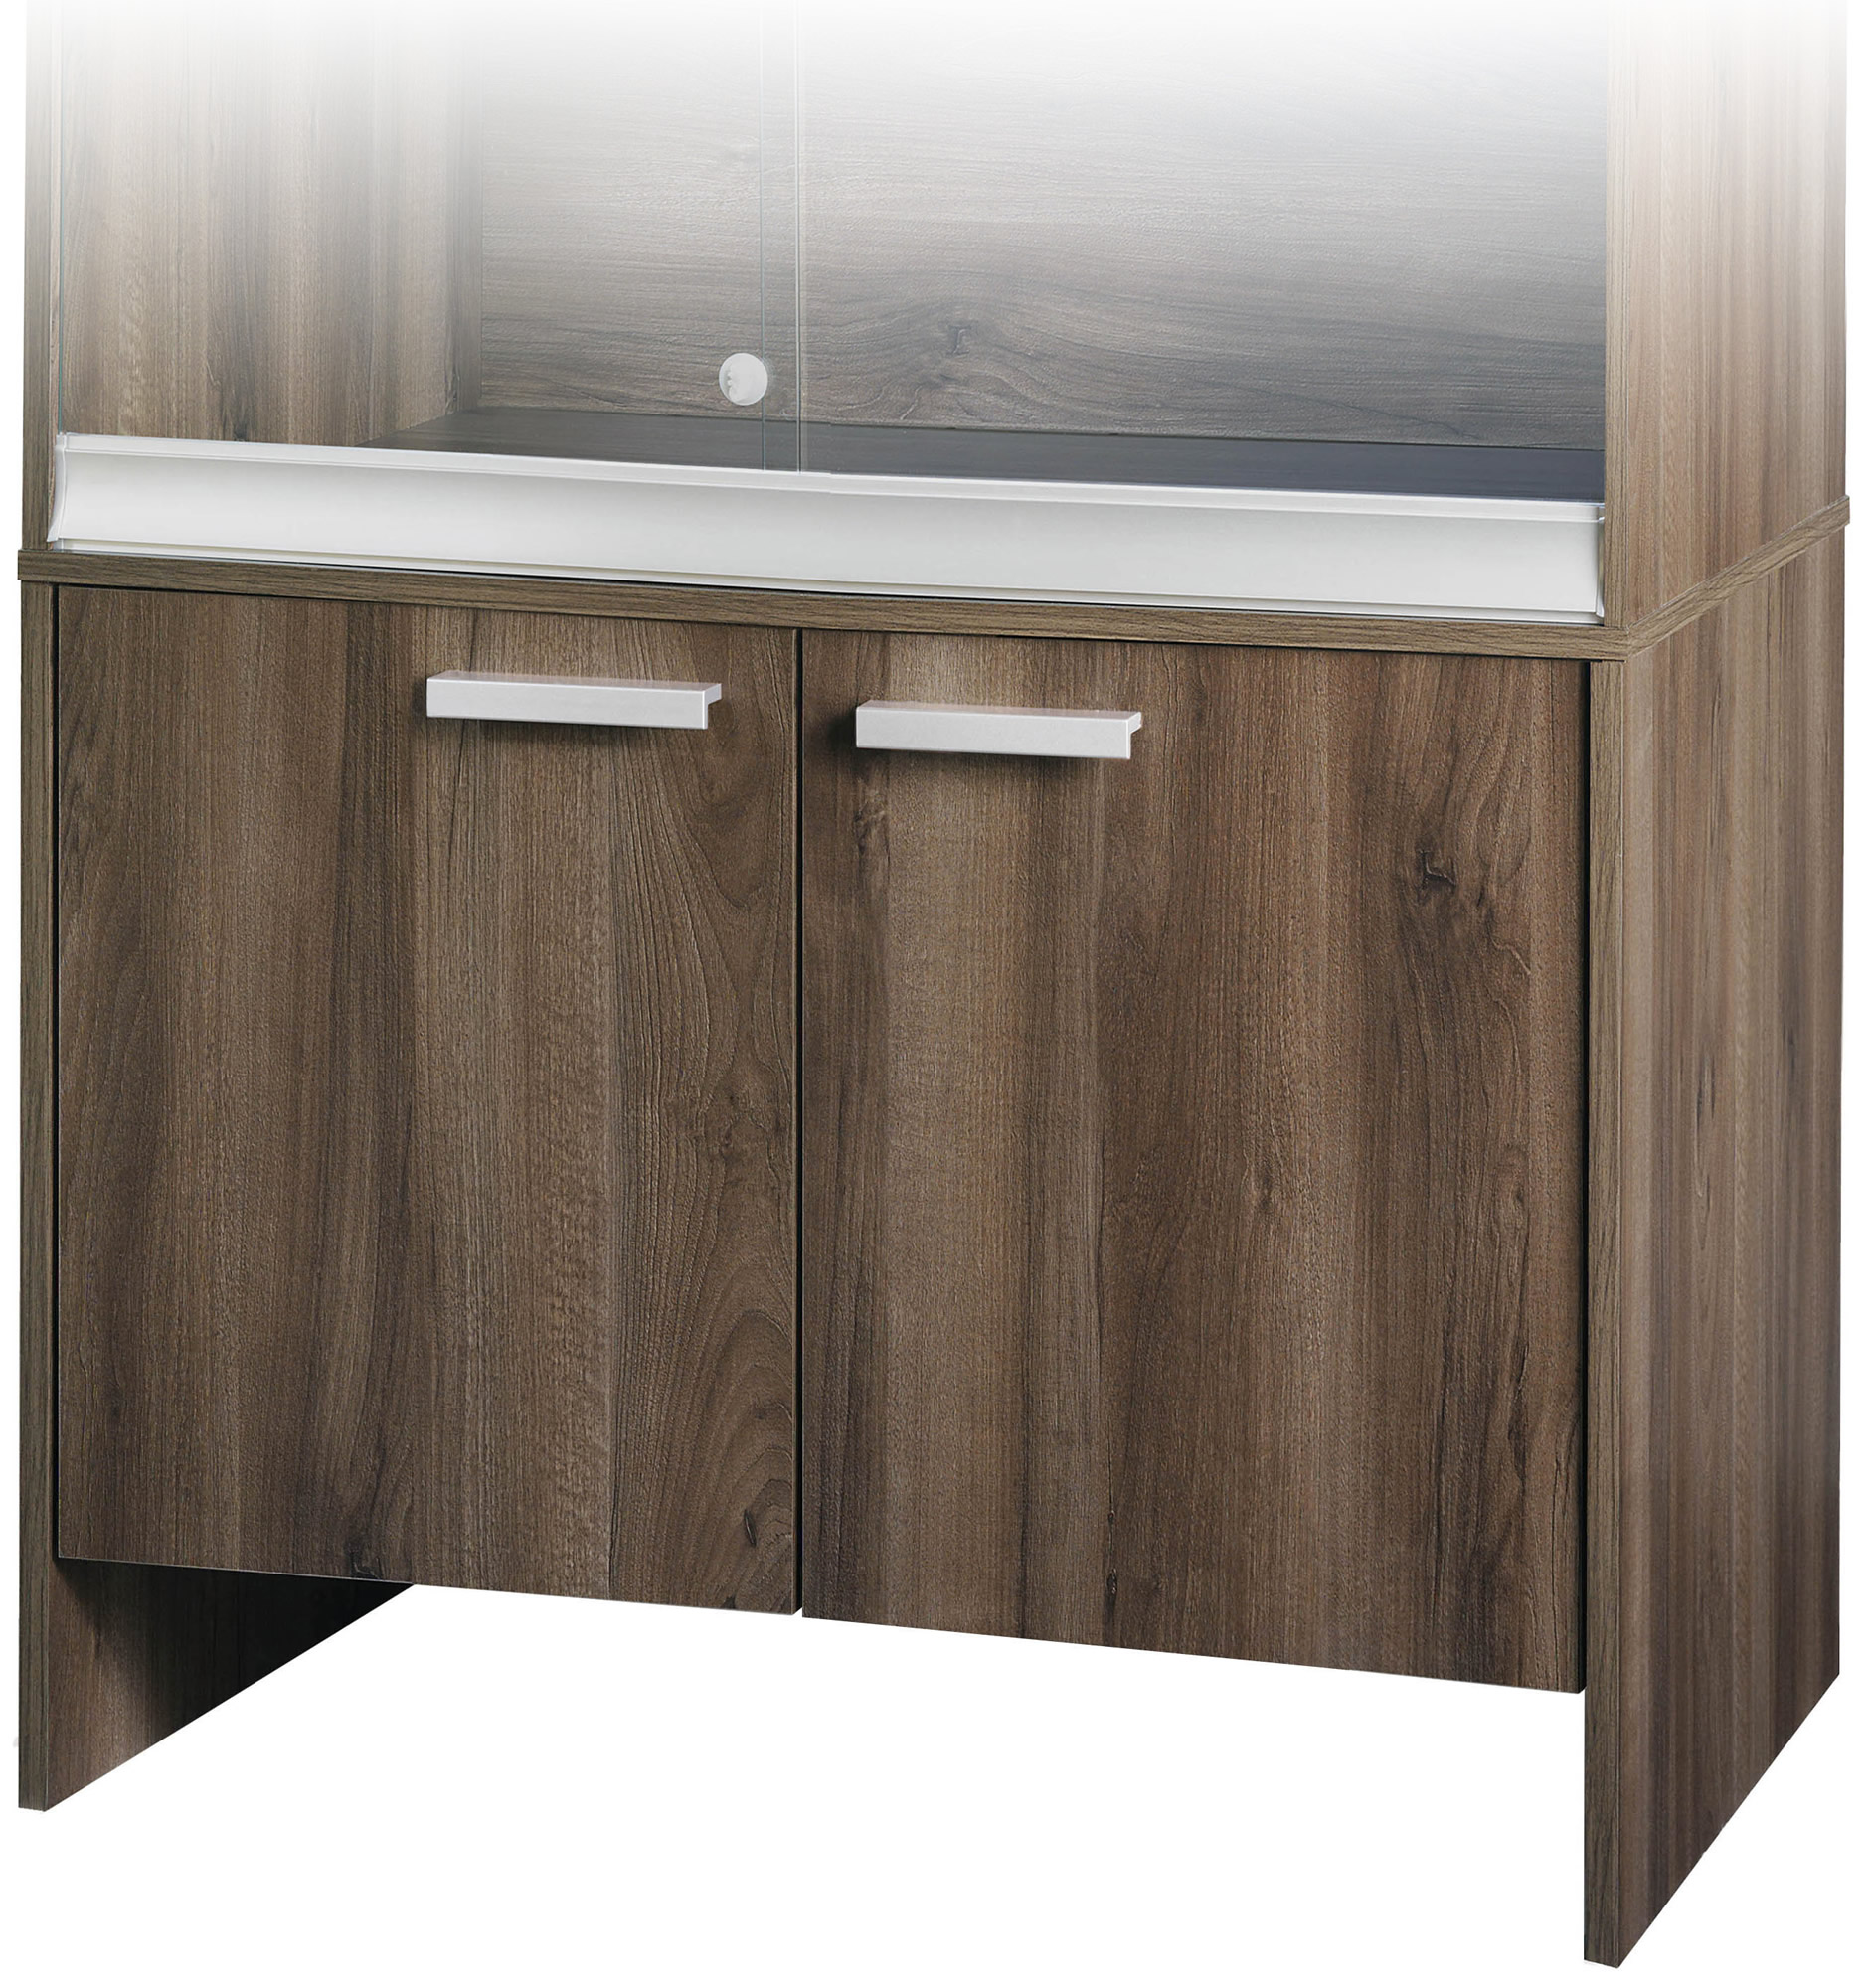 Exotic Kitchen Cabinets: Vivexotic Cabinet